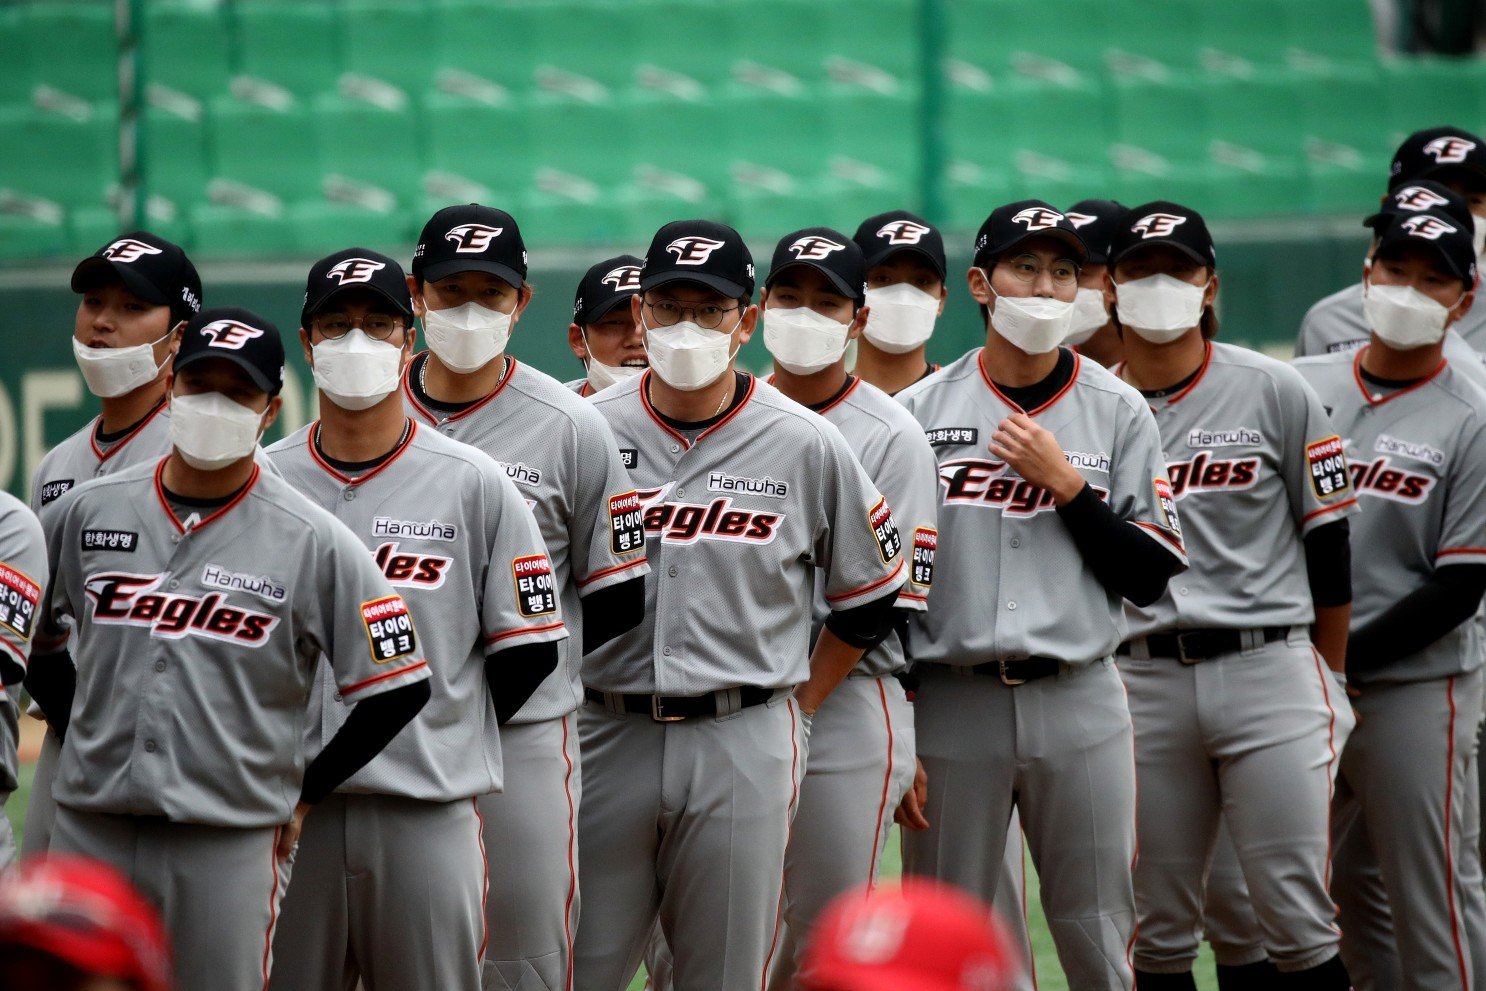 baseball teams to test all of its players and coaches for the new coronavirus